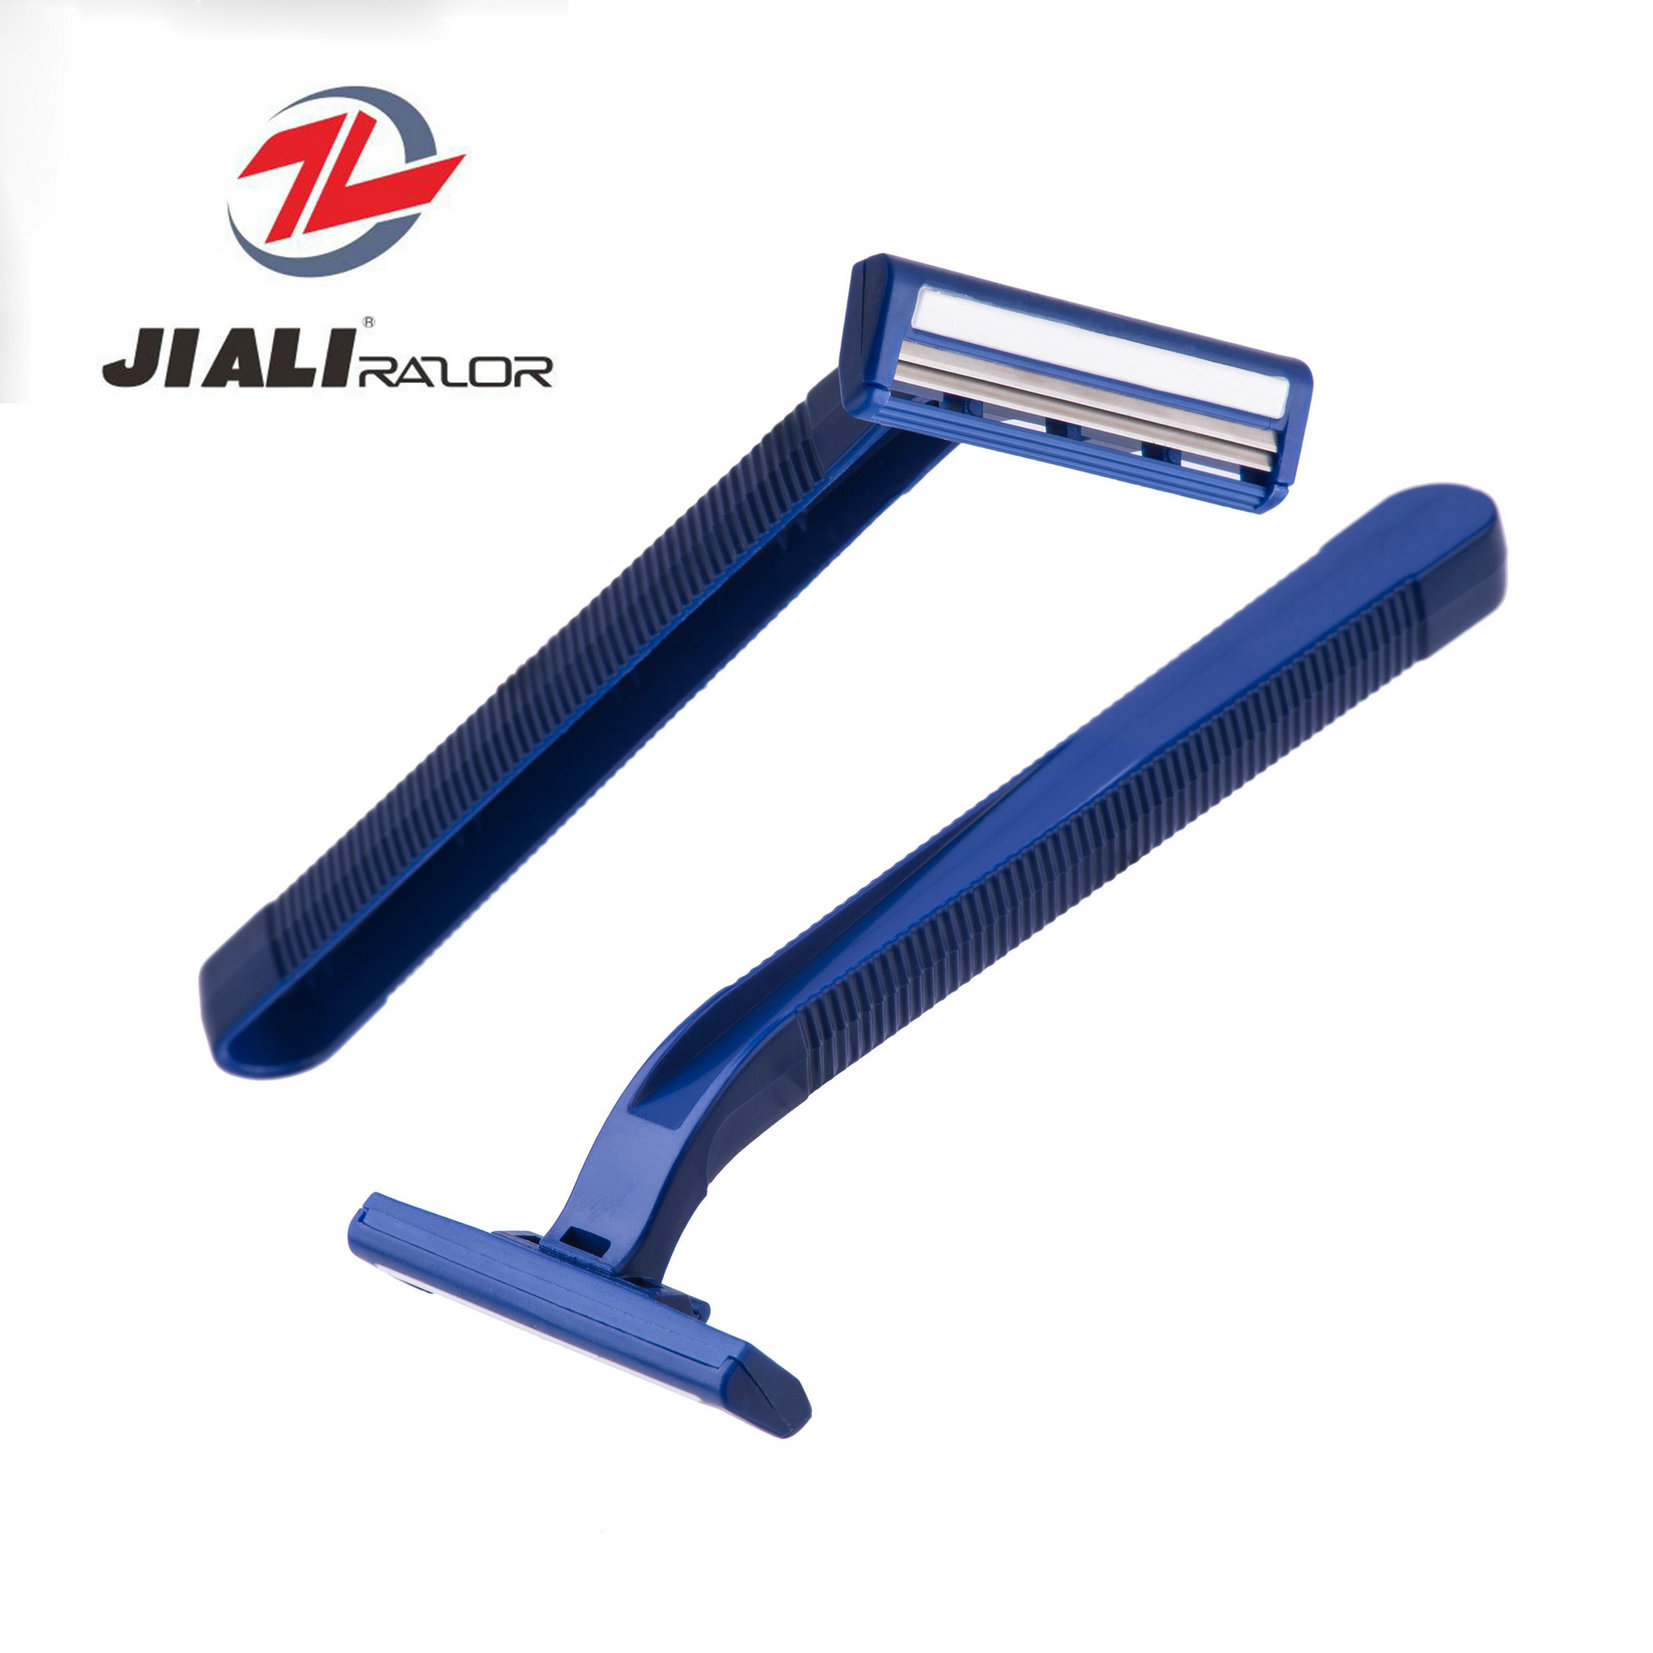 Twin Blade Disposable Razor with Lubricant and Stainless Steel Blade